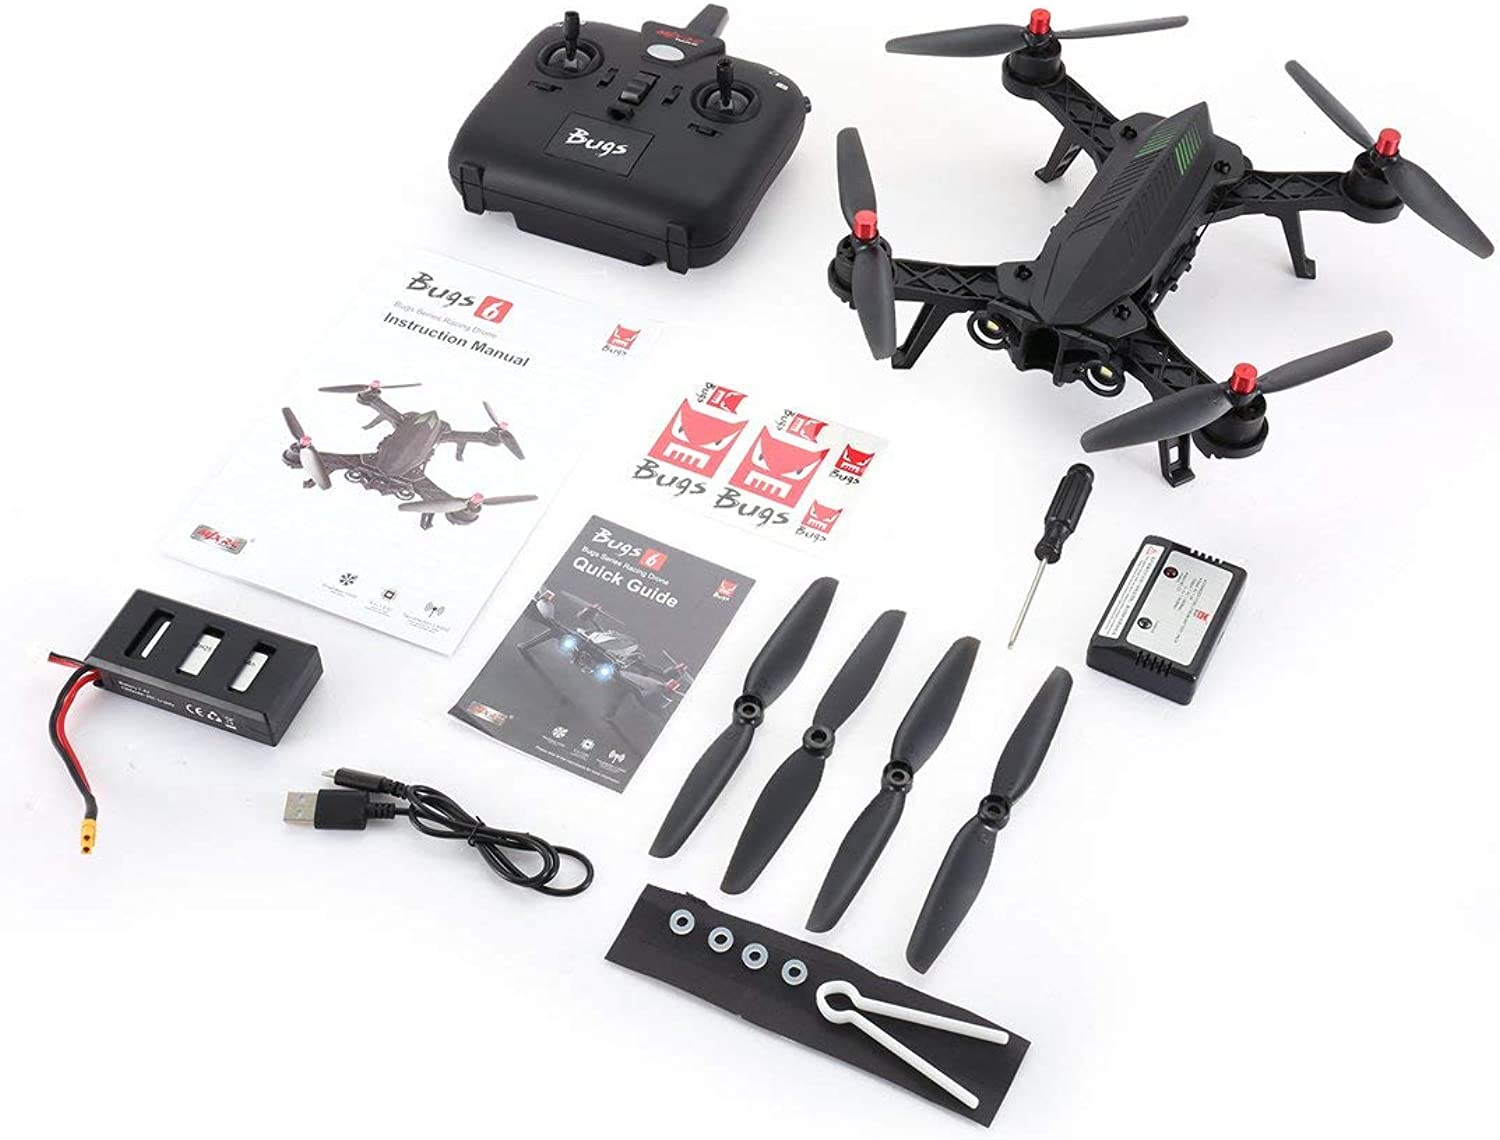 Swiftswan 2.4GHz 4CH 6 Axis Gyro Preassembled RTF Racing Drone High Speed 1806 1800KV Motor Brushless RC Quadcopter